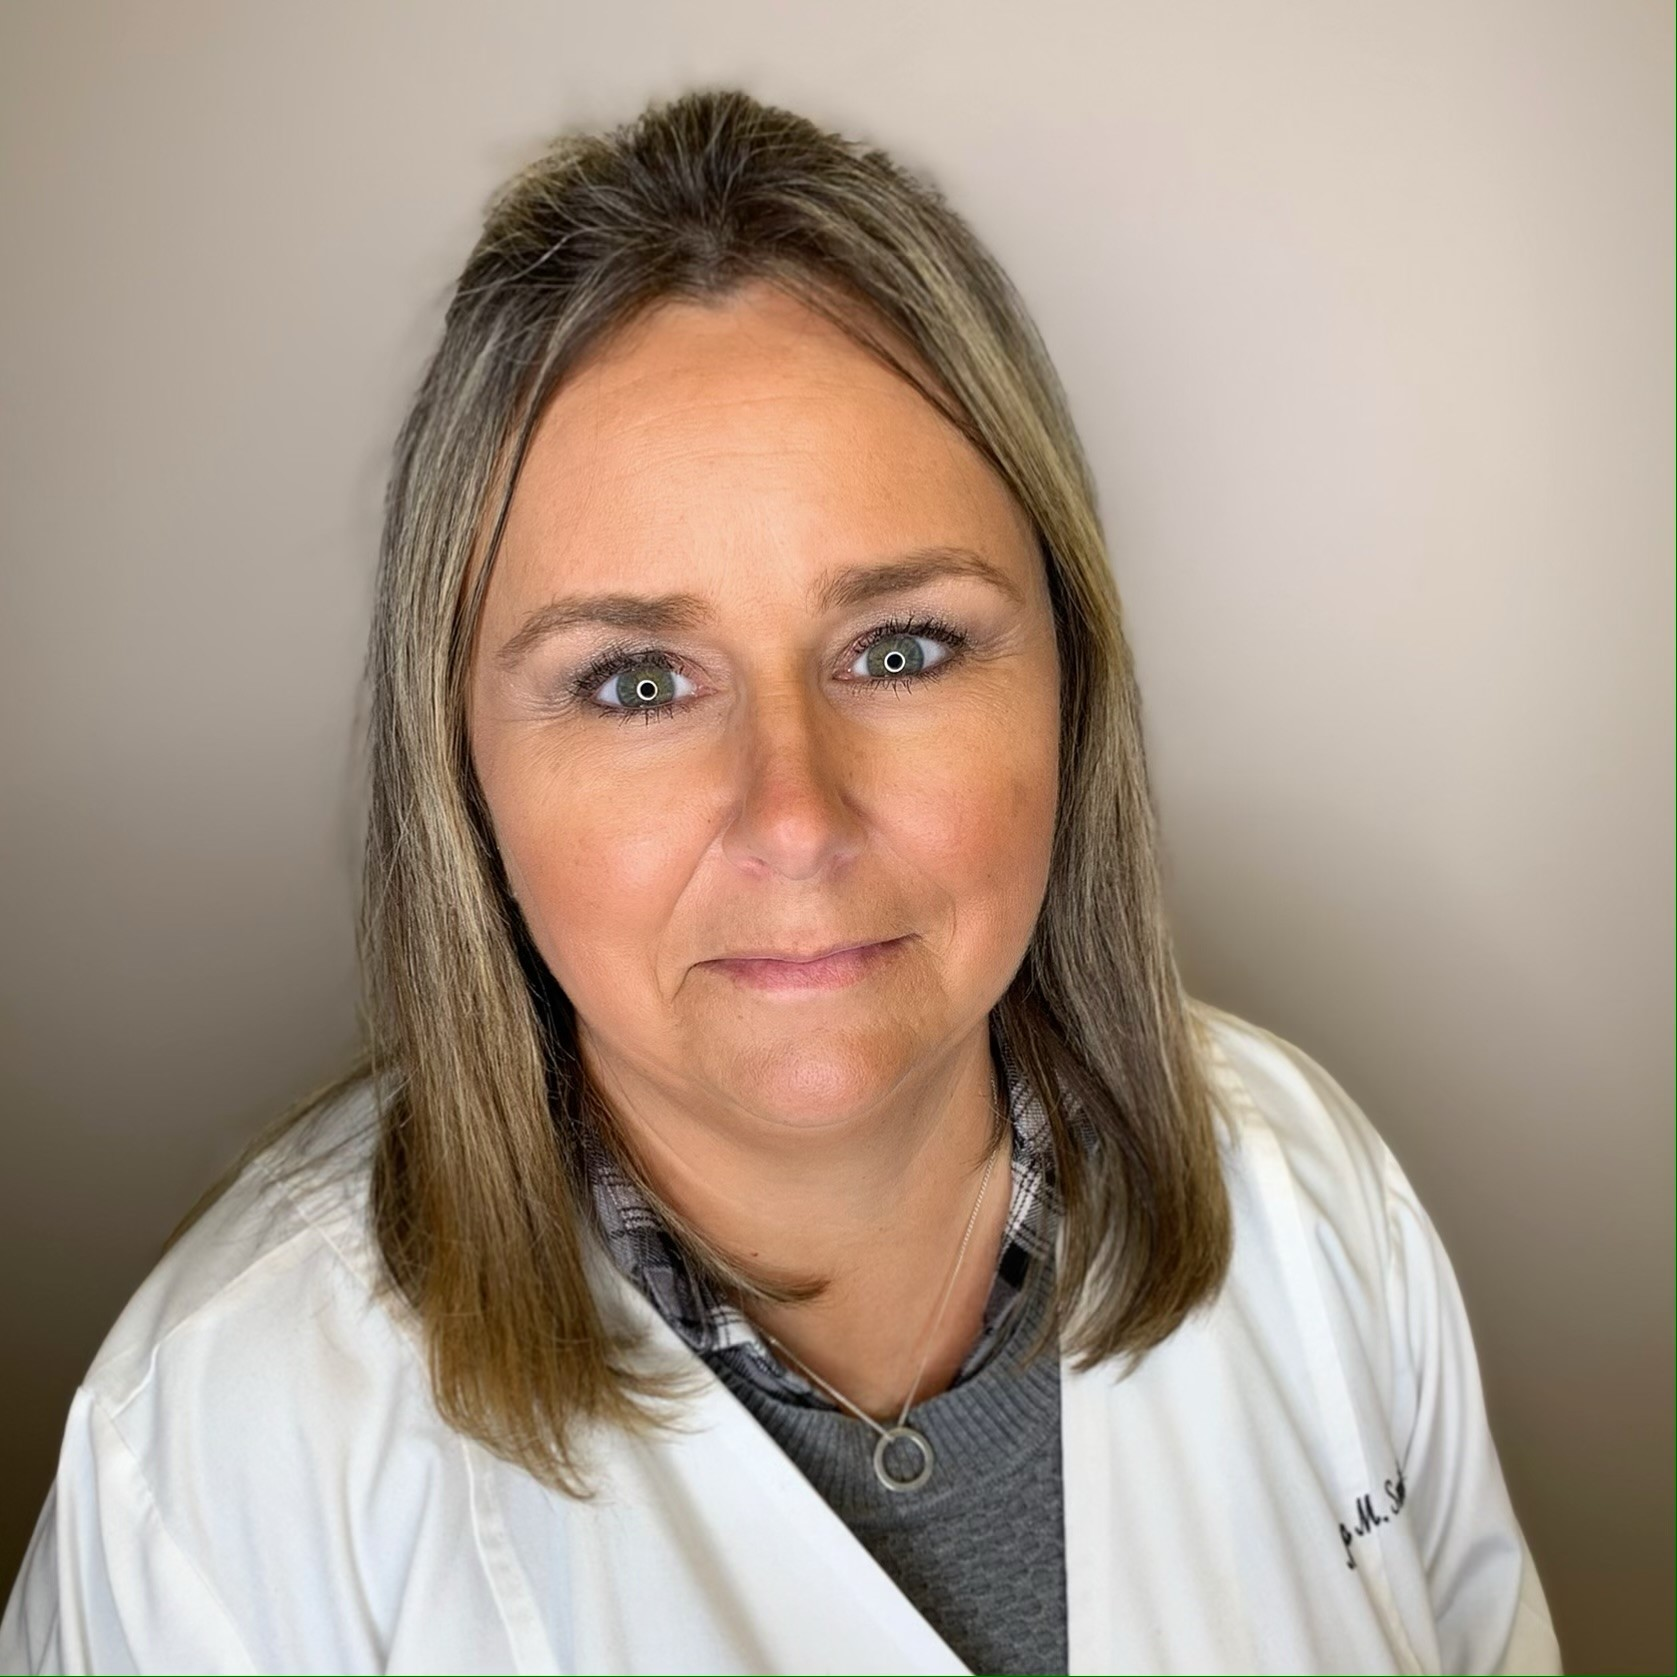 Marlo M. Smith, APRN is well known throughout the Newnan and Coweta County areas for offering experienced compassionate care. She is highly skilled and rounds out CPM's clinical team.